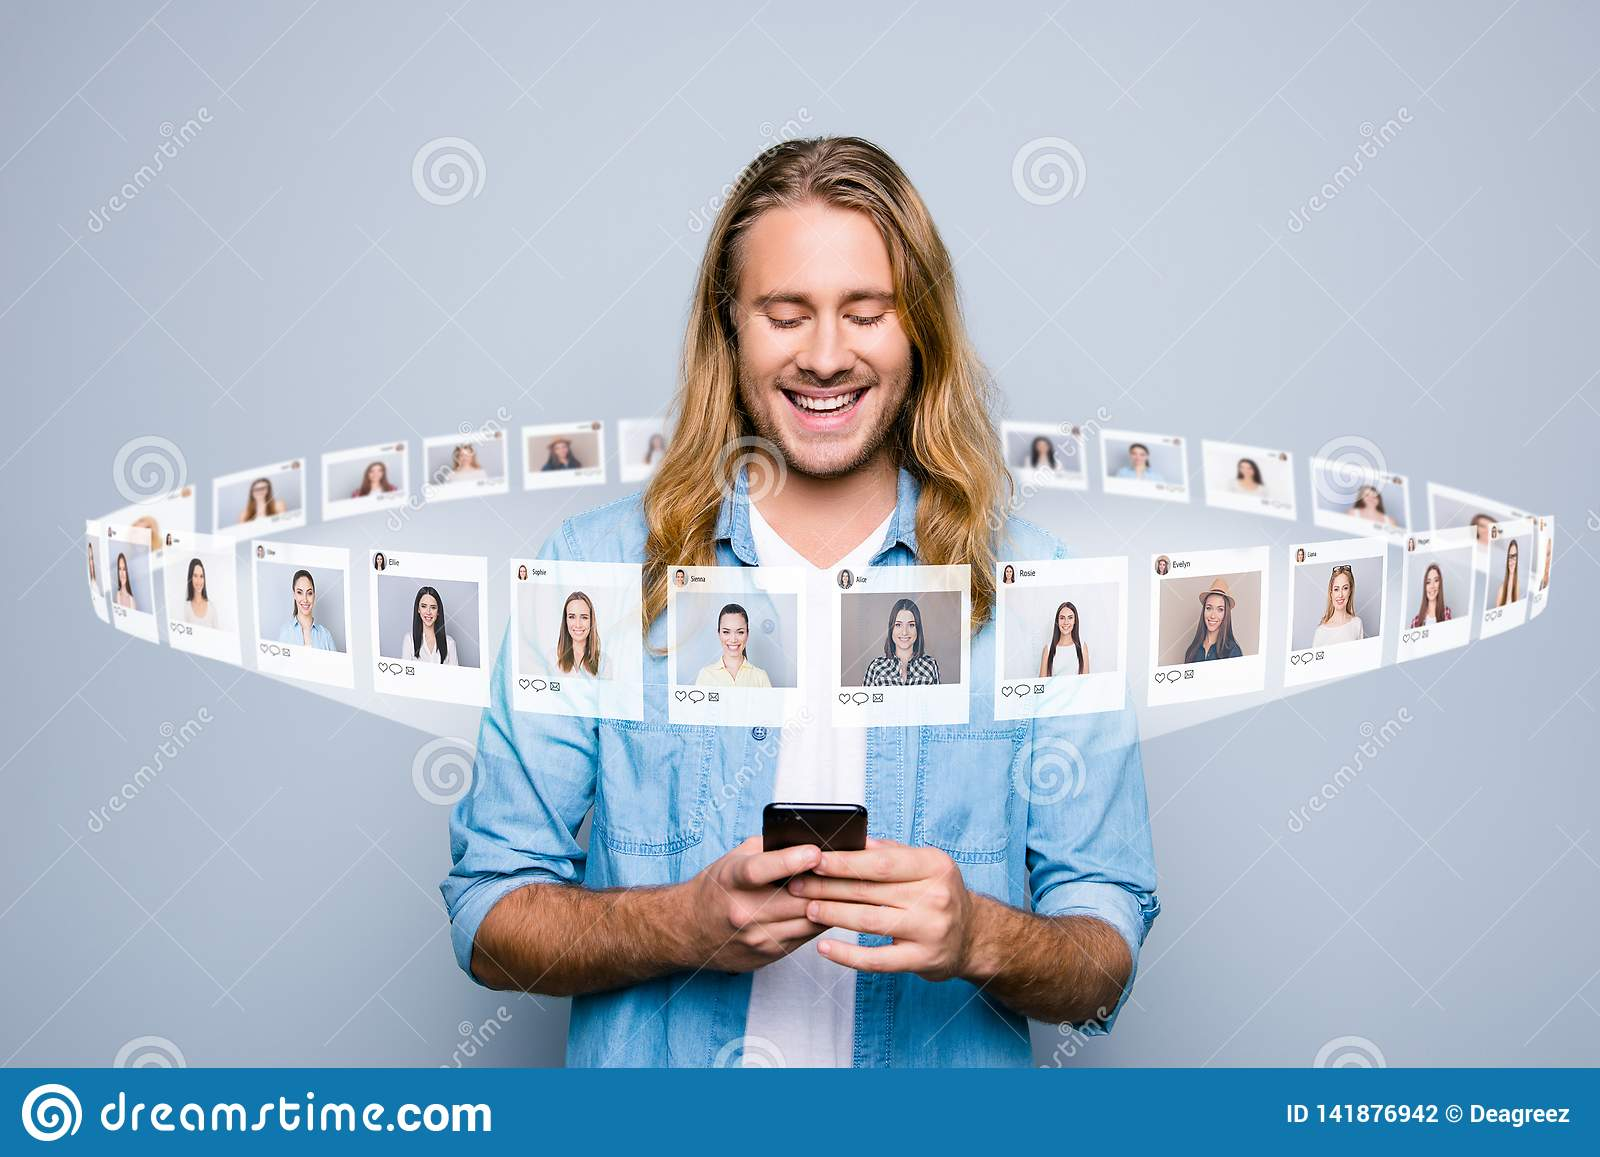 Close up photo interested he him his guy hold telephone read new post influencer blogger page user illustration pictures